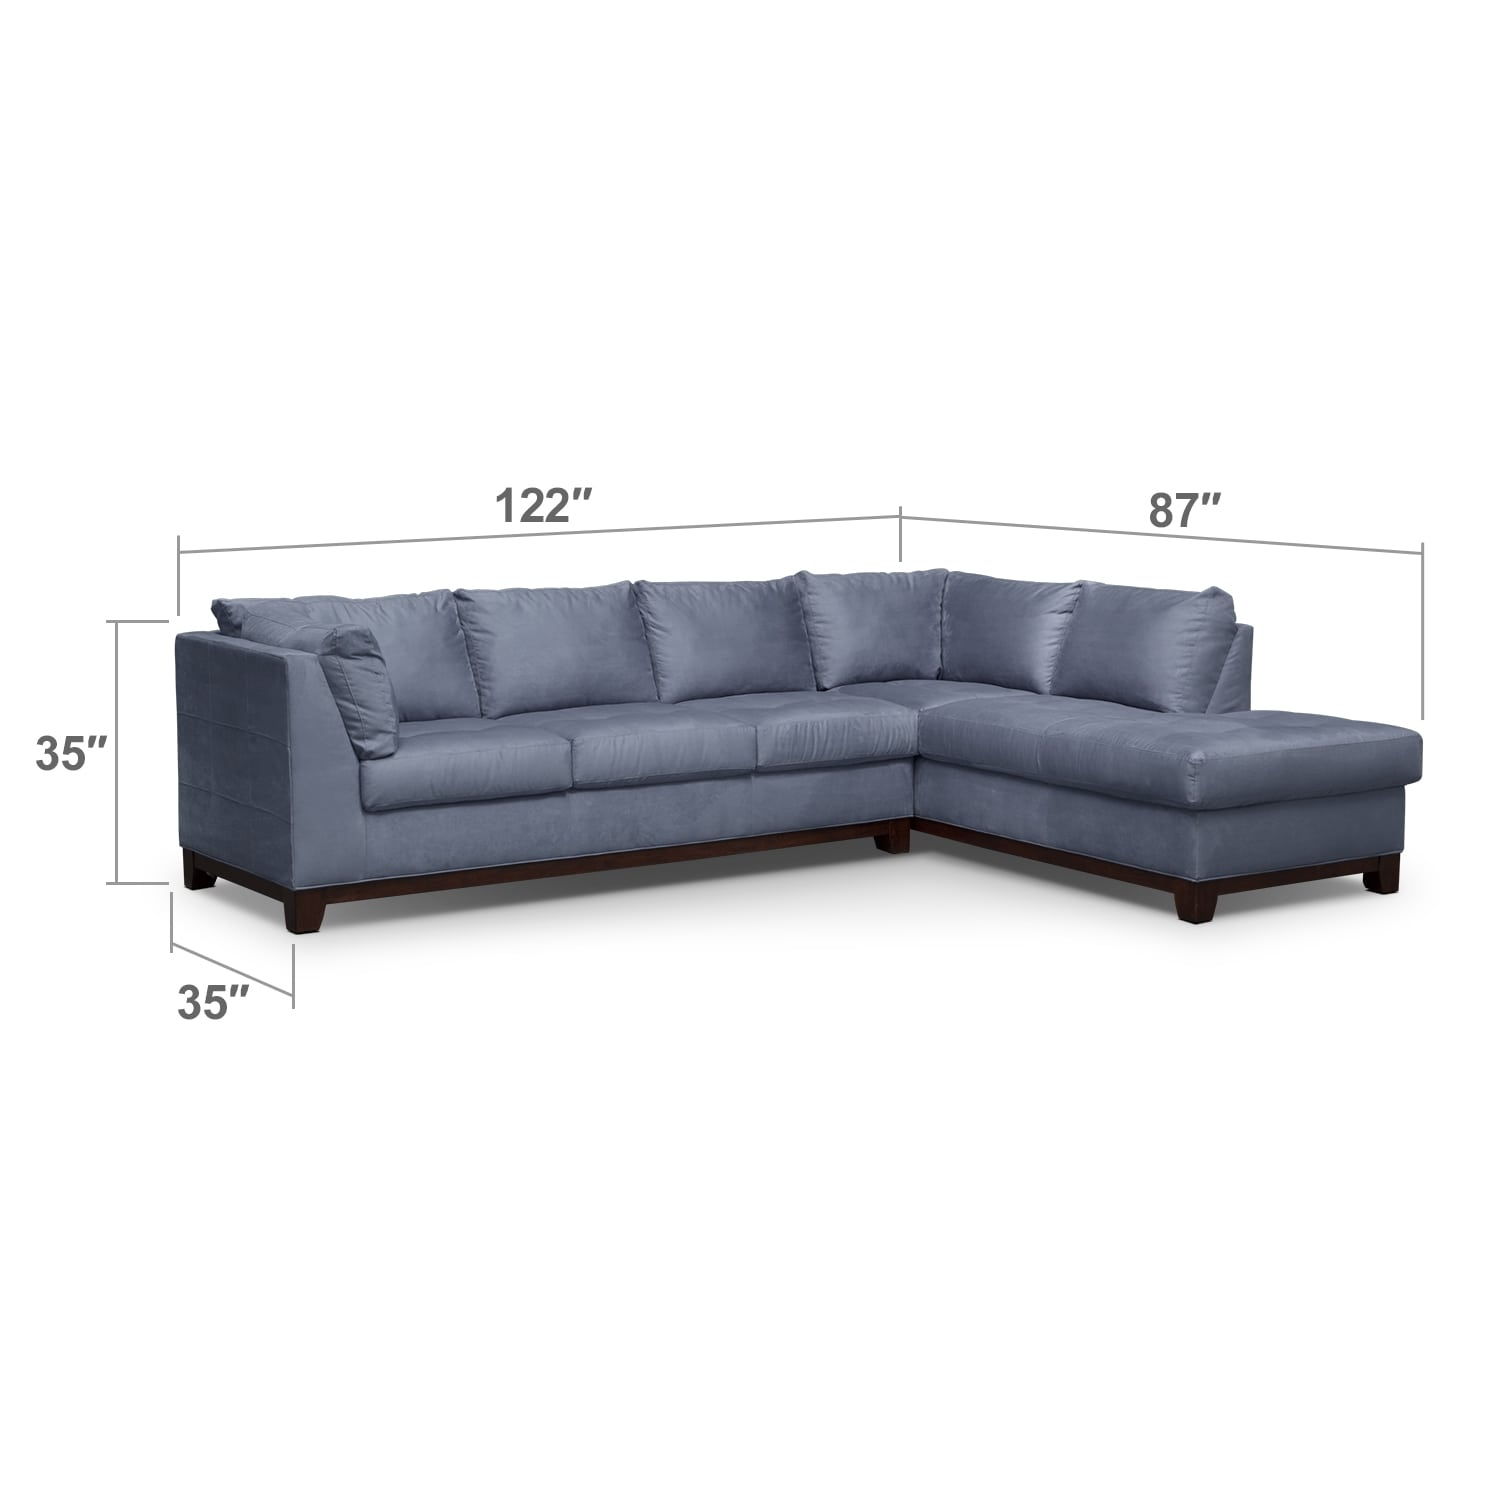 Living Room Furniture - Soho IV 2 Pc. Sectional